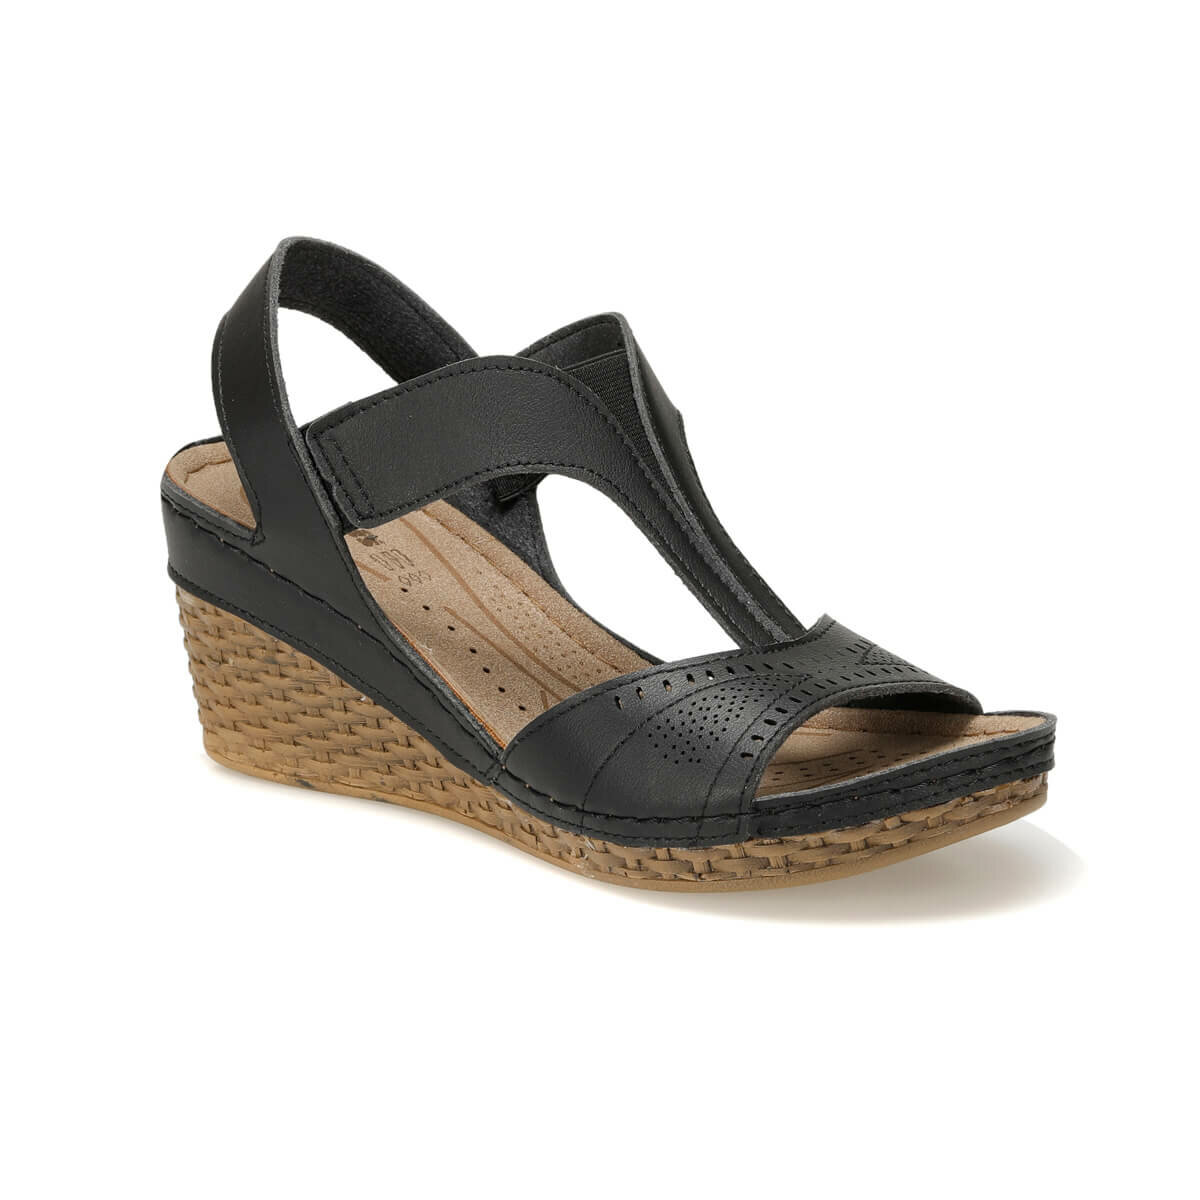 FLO 91.150773.Z Black Women Sandals Polaris